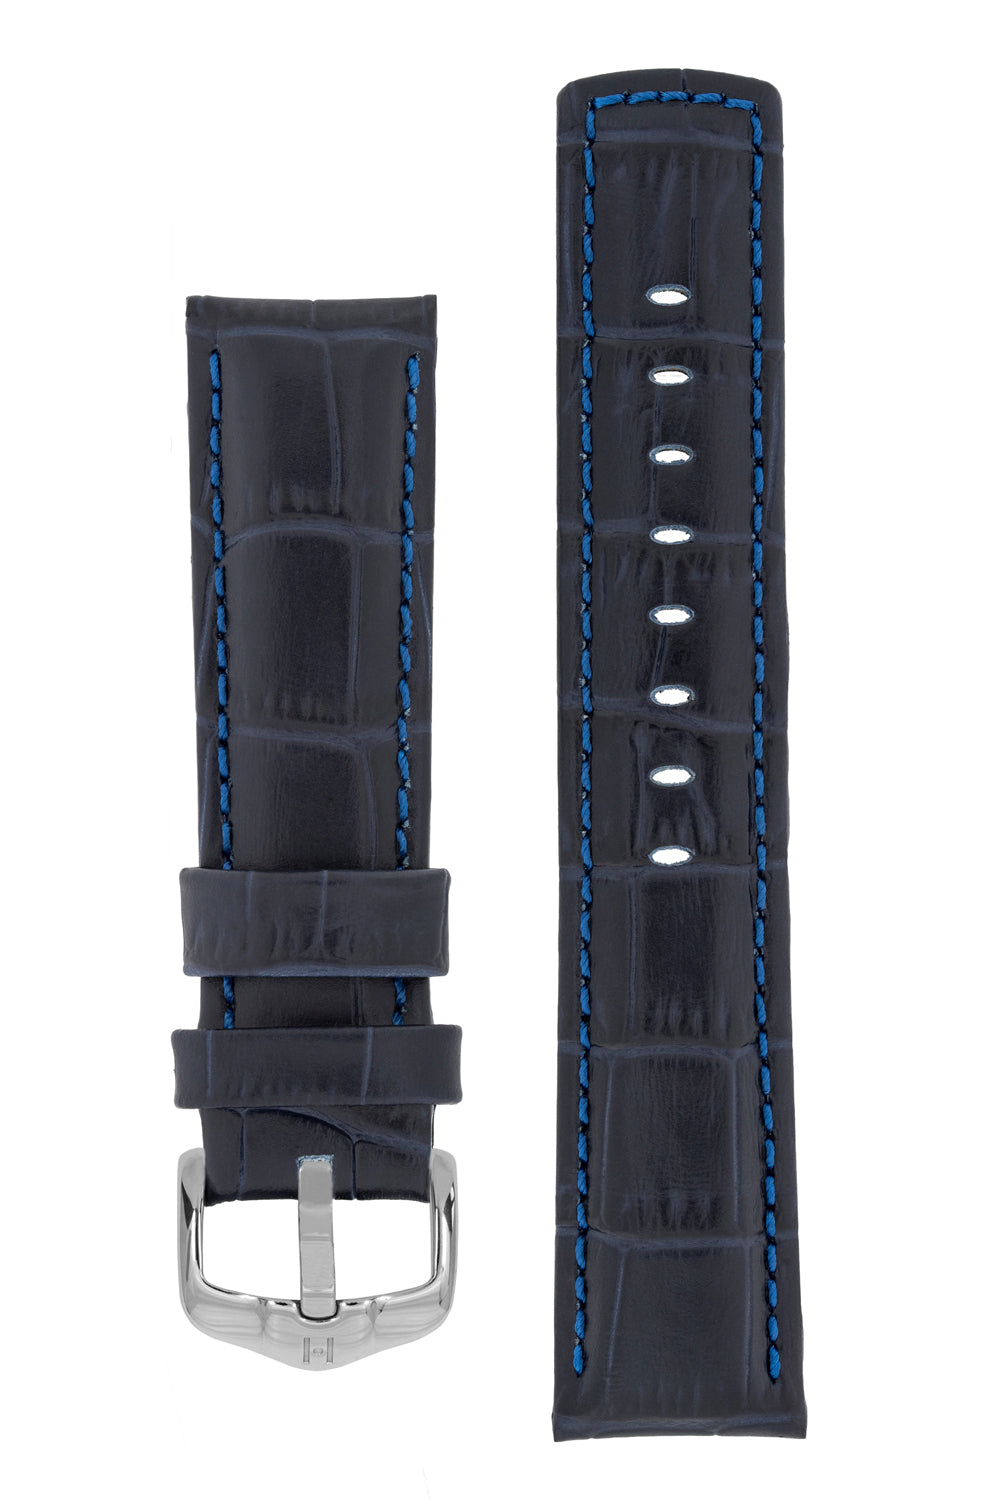 Hirsch GRAND DUKE Water-Resistant Alligator Embossed Sport Watch Strap in DARK BLUE